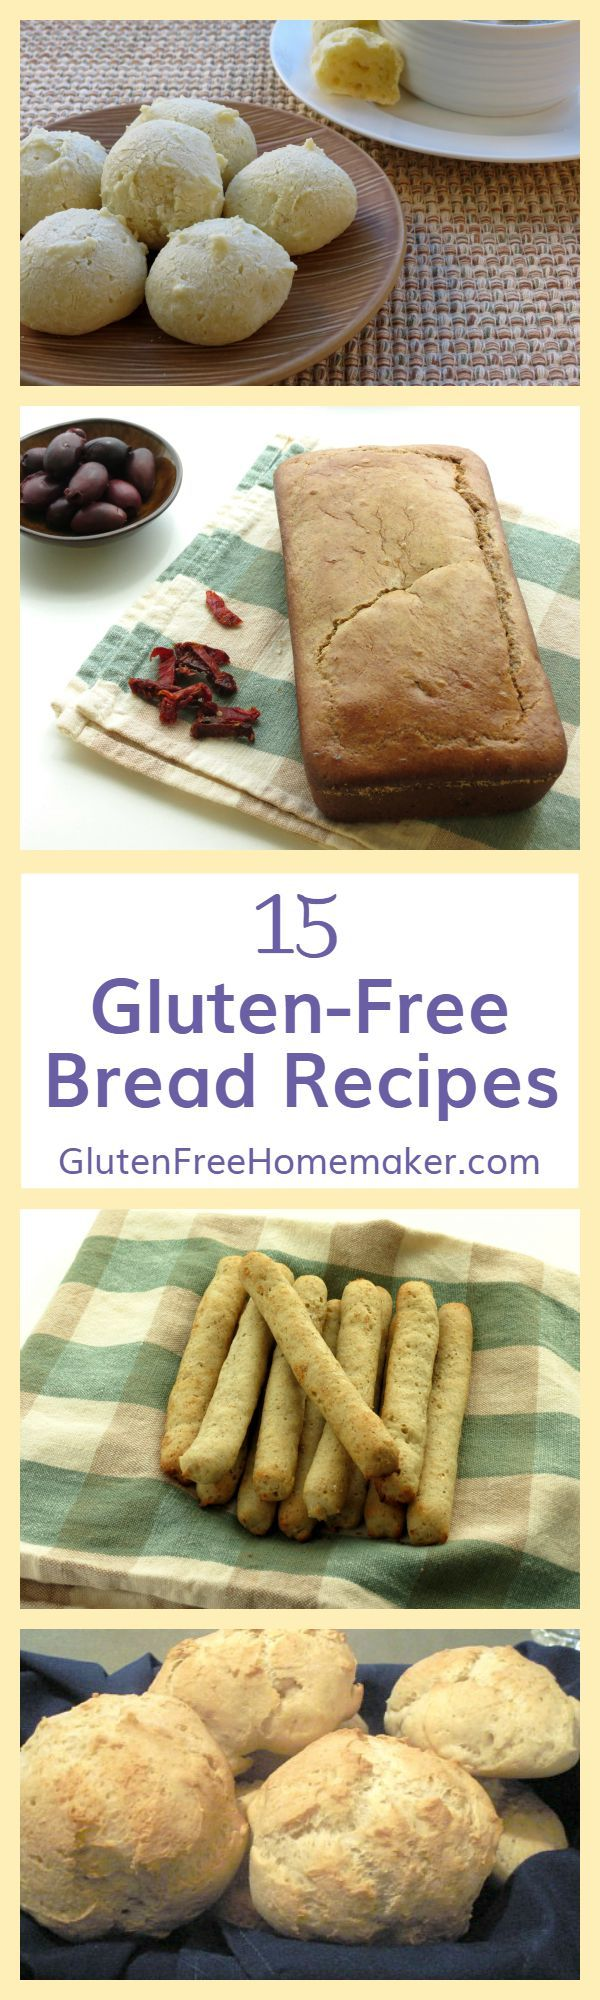 15 Gluten-Free Bread Recipes including French bread, rolls, biscuits, and more! Found at Gluten-Free Homemaker